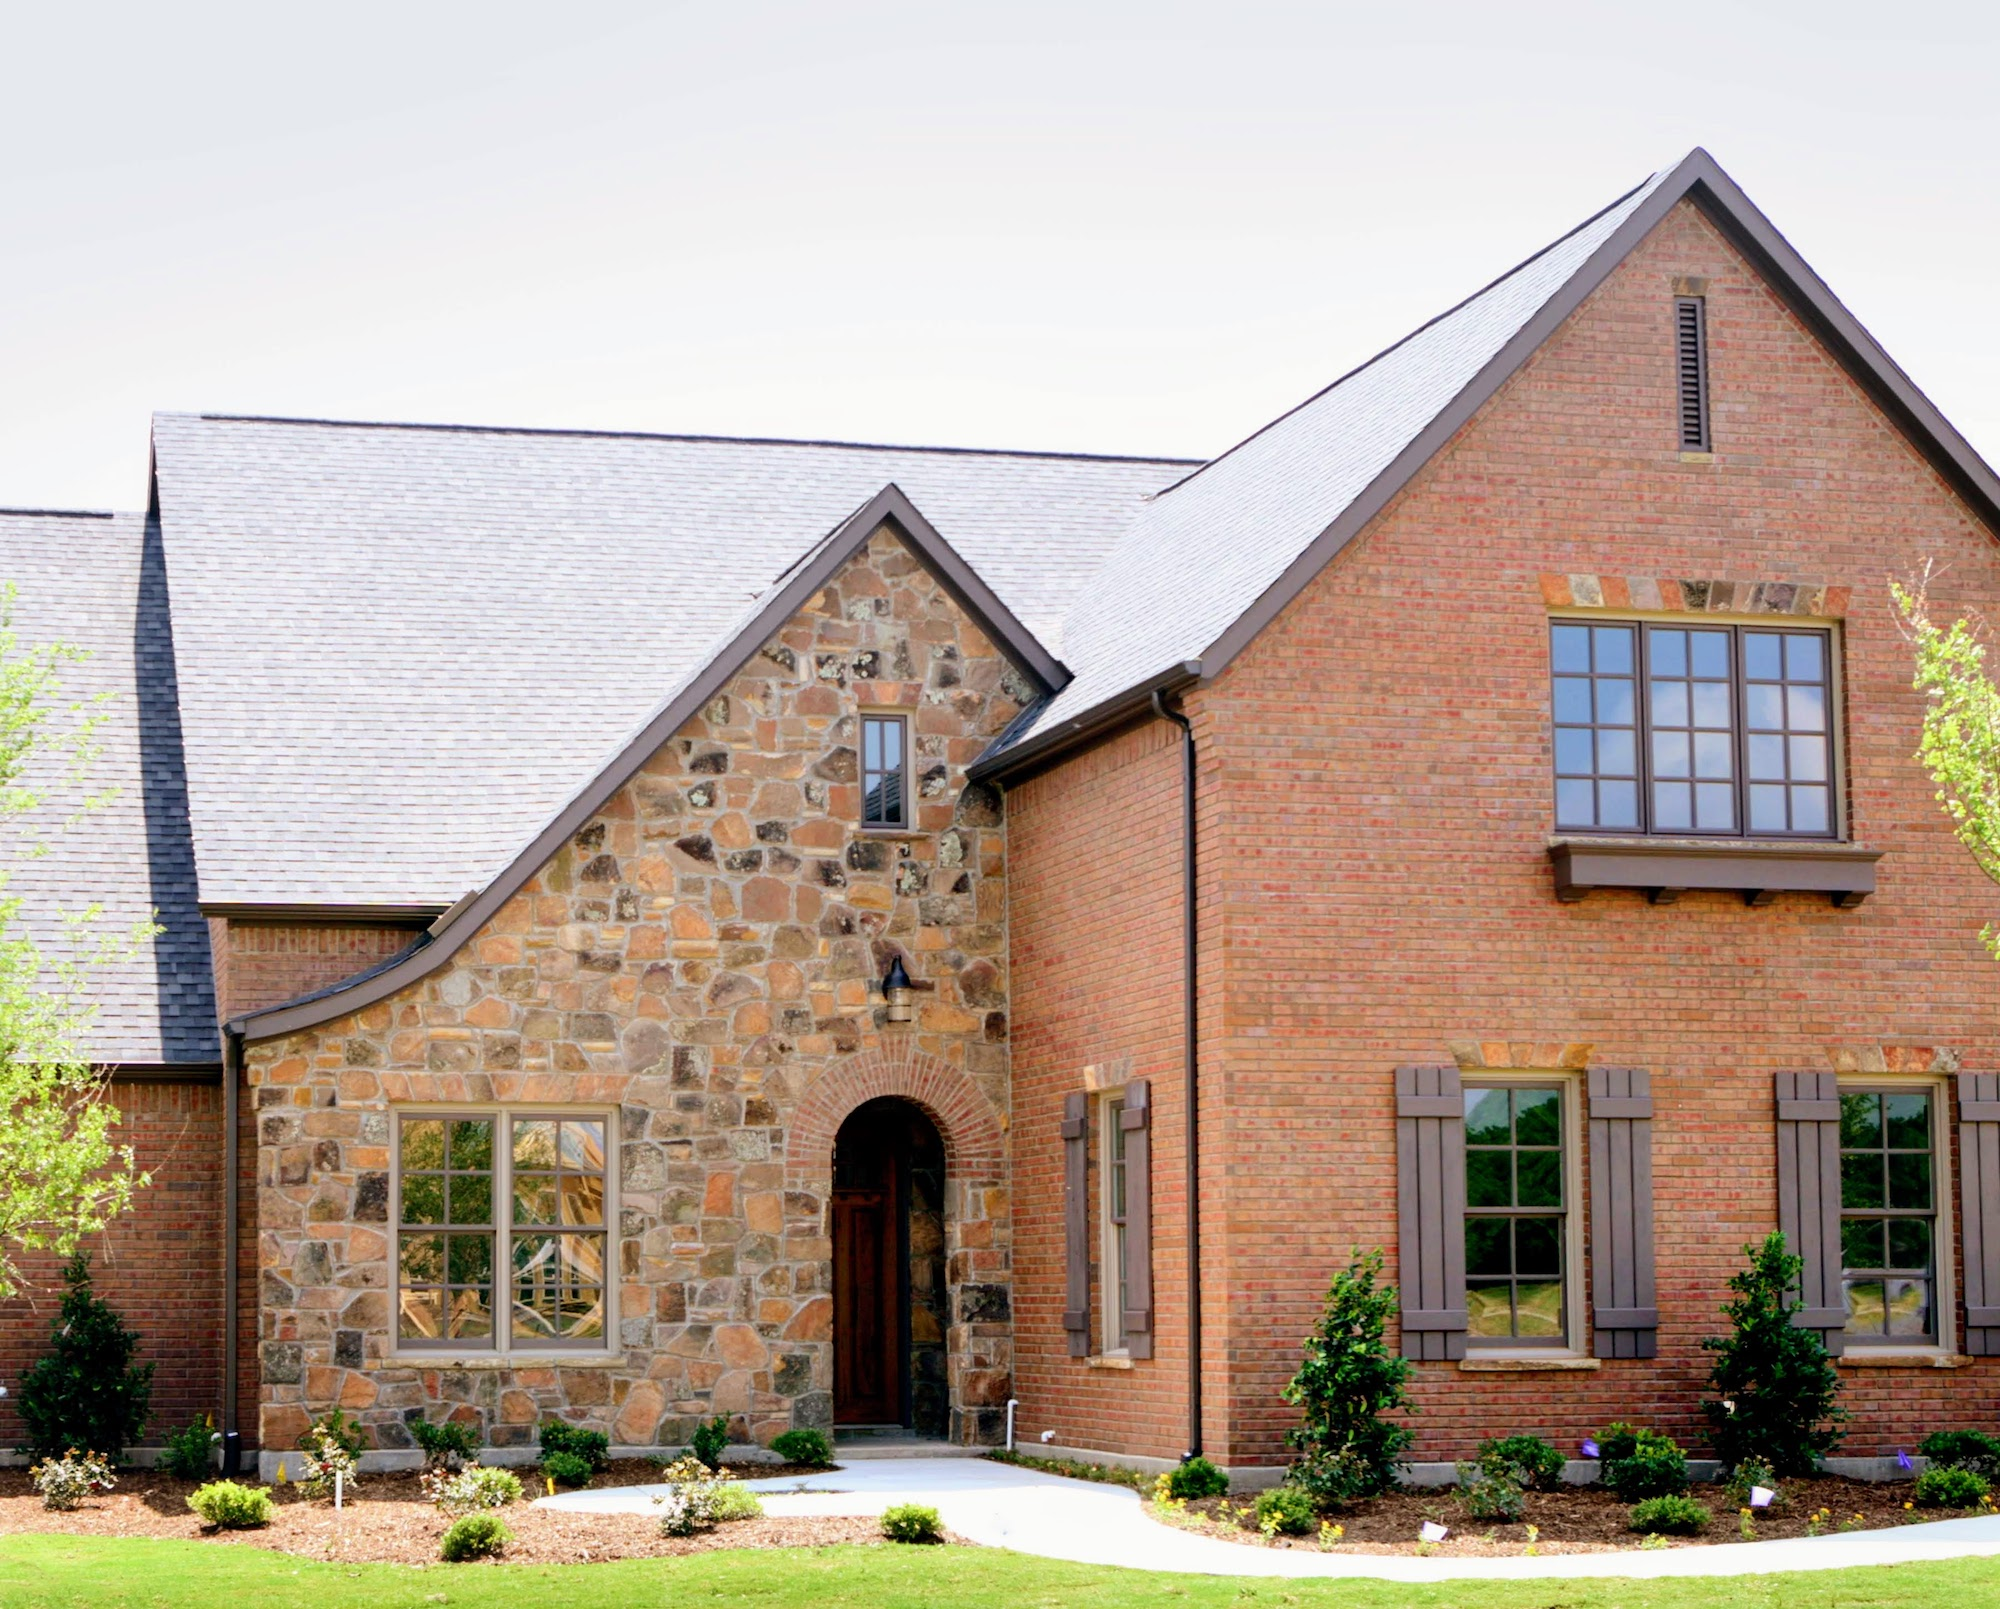 Exterior Home Design (North Texas): brick and stone with wood windows front exterior